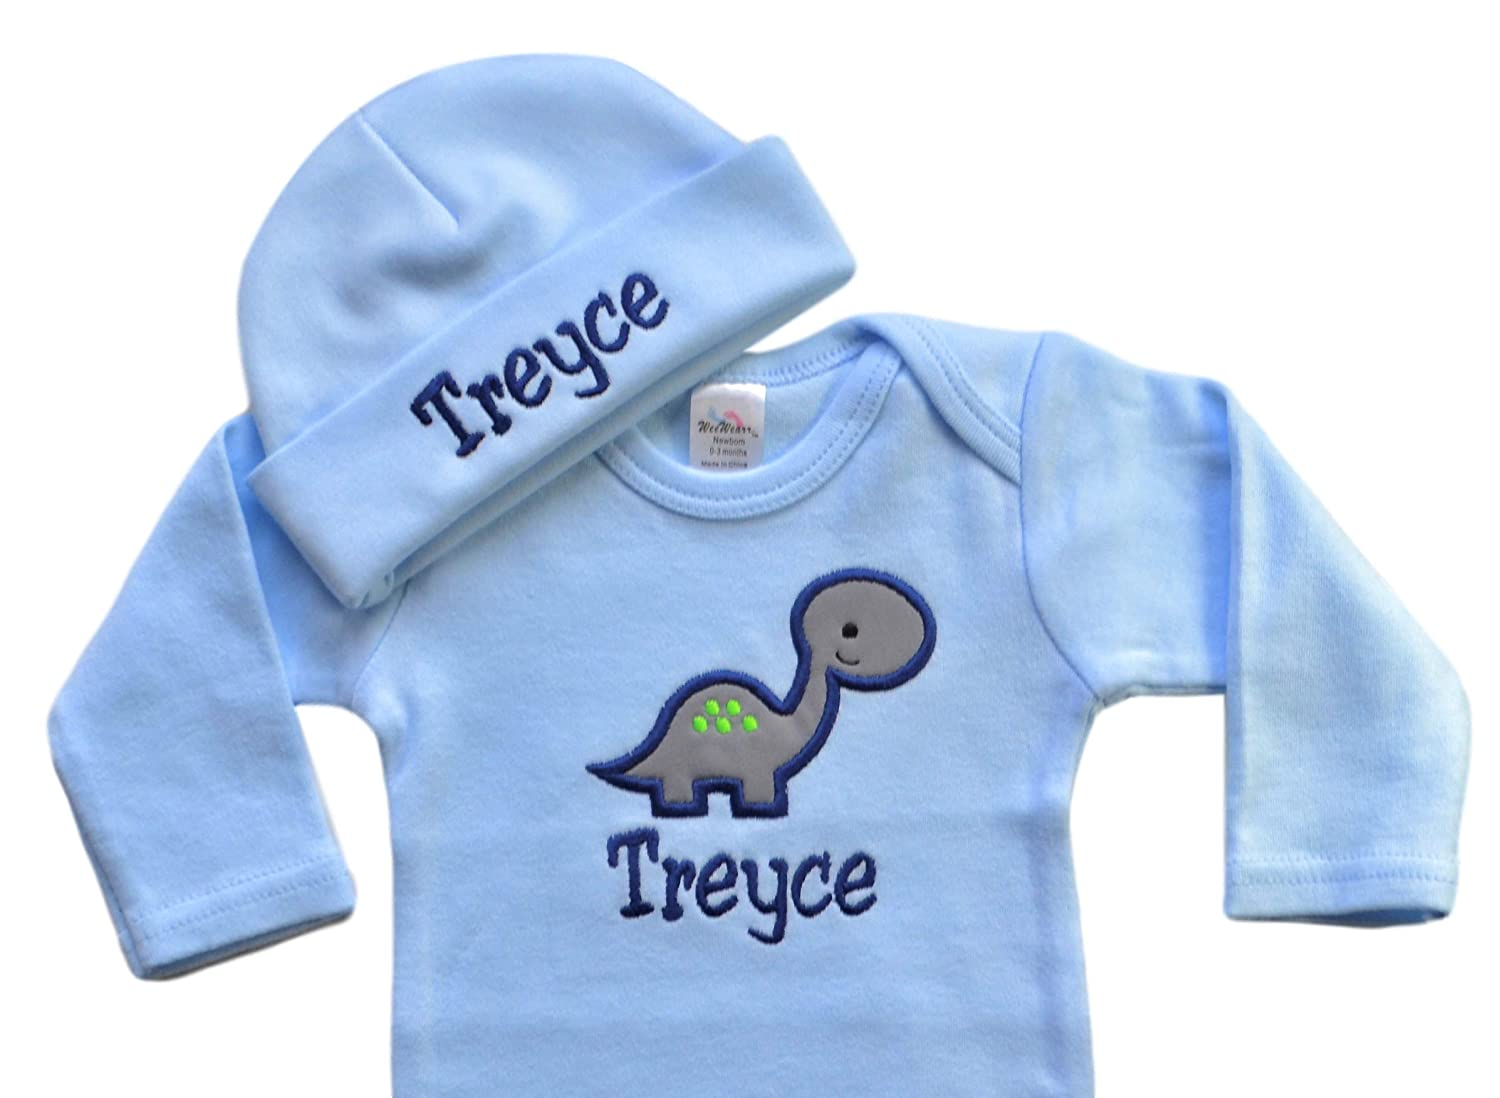 Your Custom Name Personalized Embroidered Baby Boy Dinosaur Newborn Gown with Matching Cotton Beanie Hat